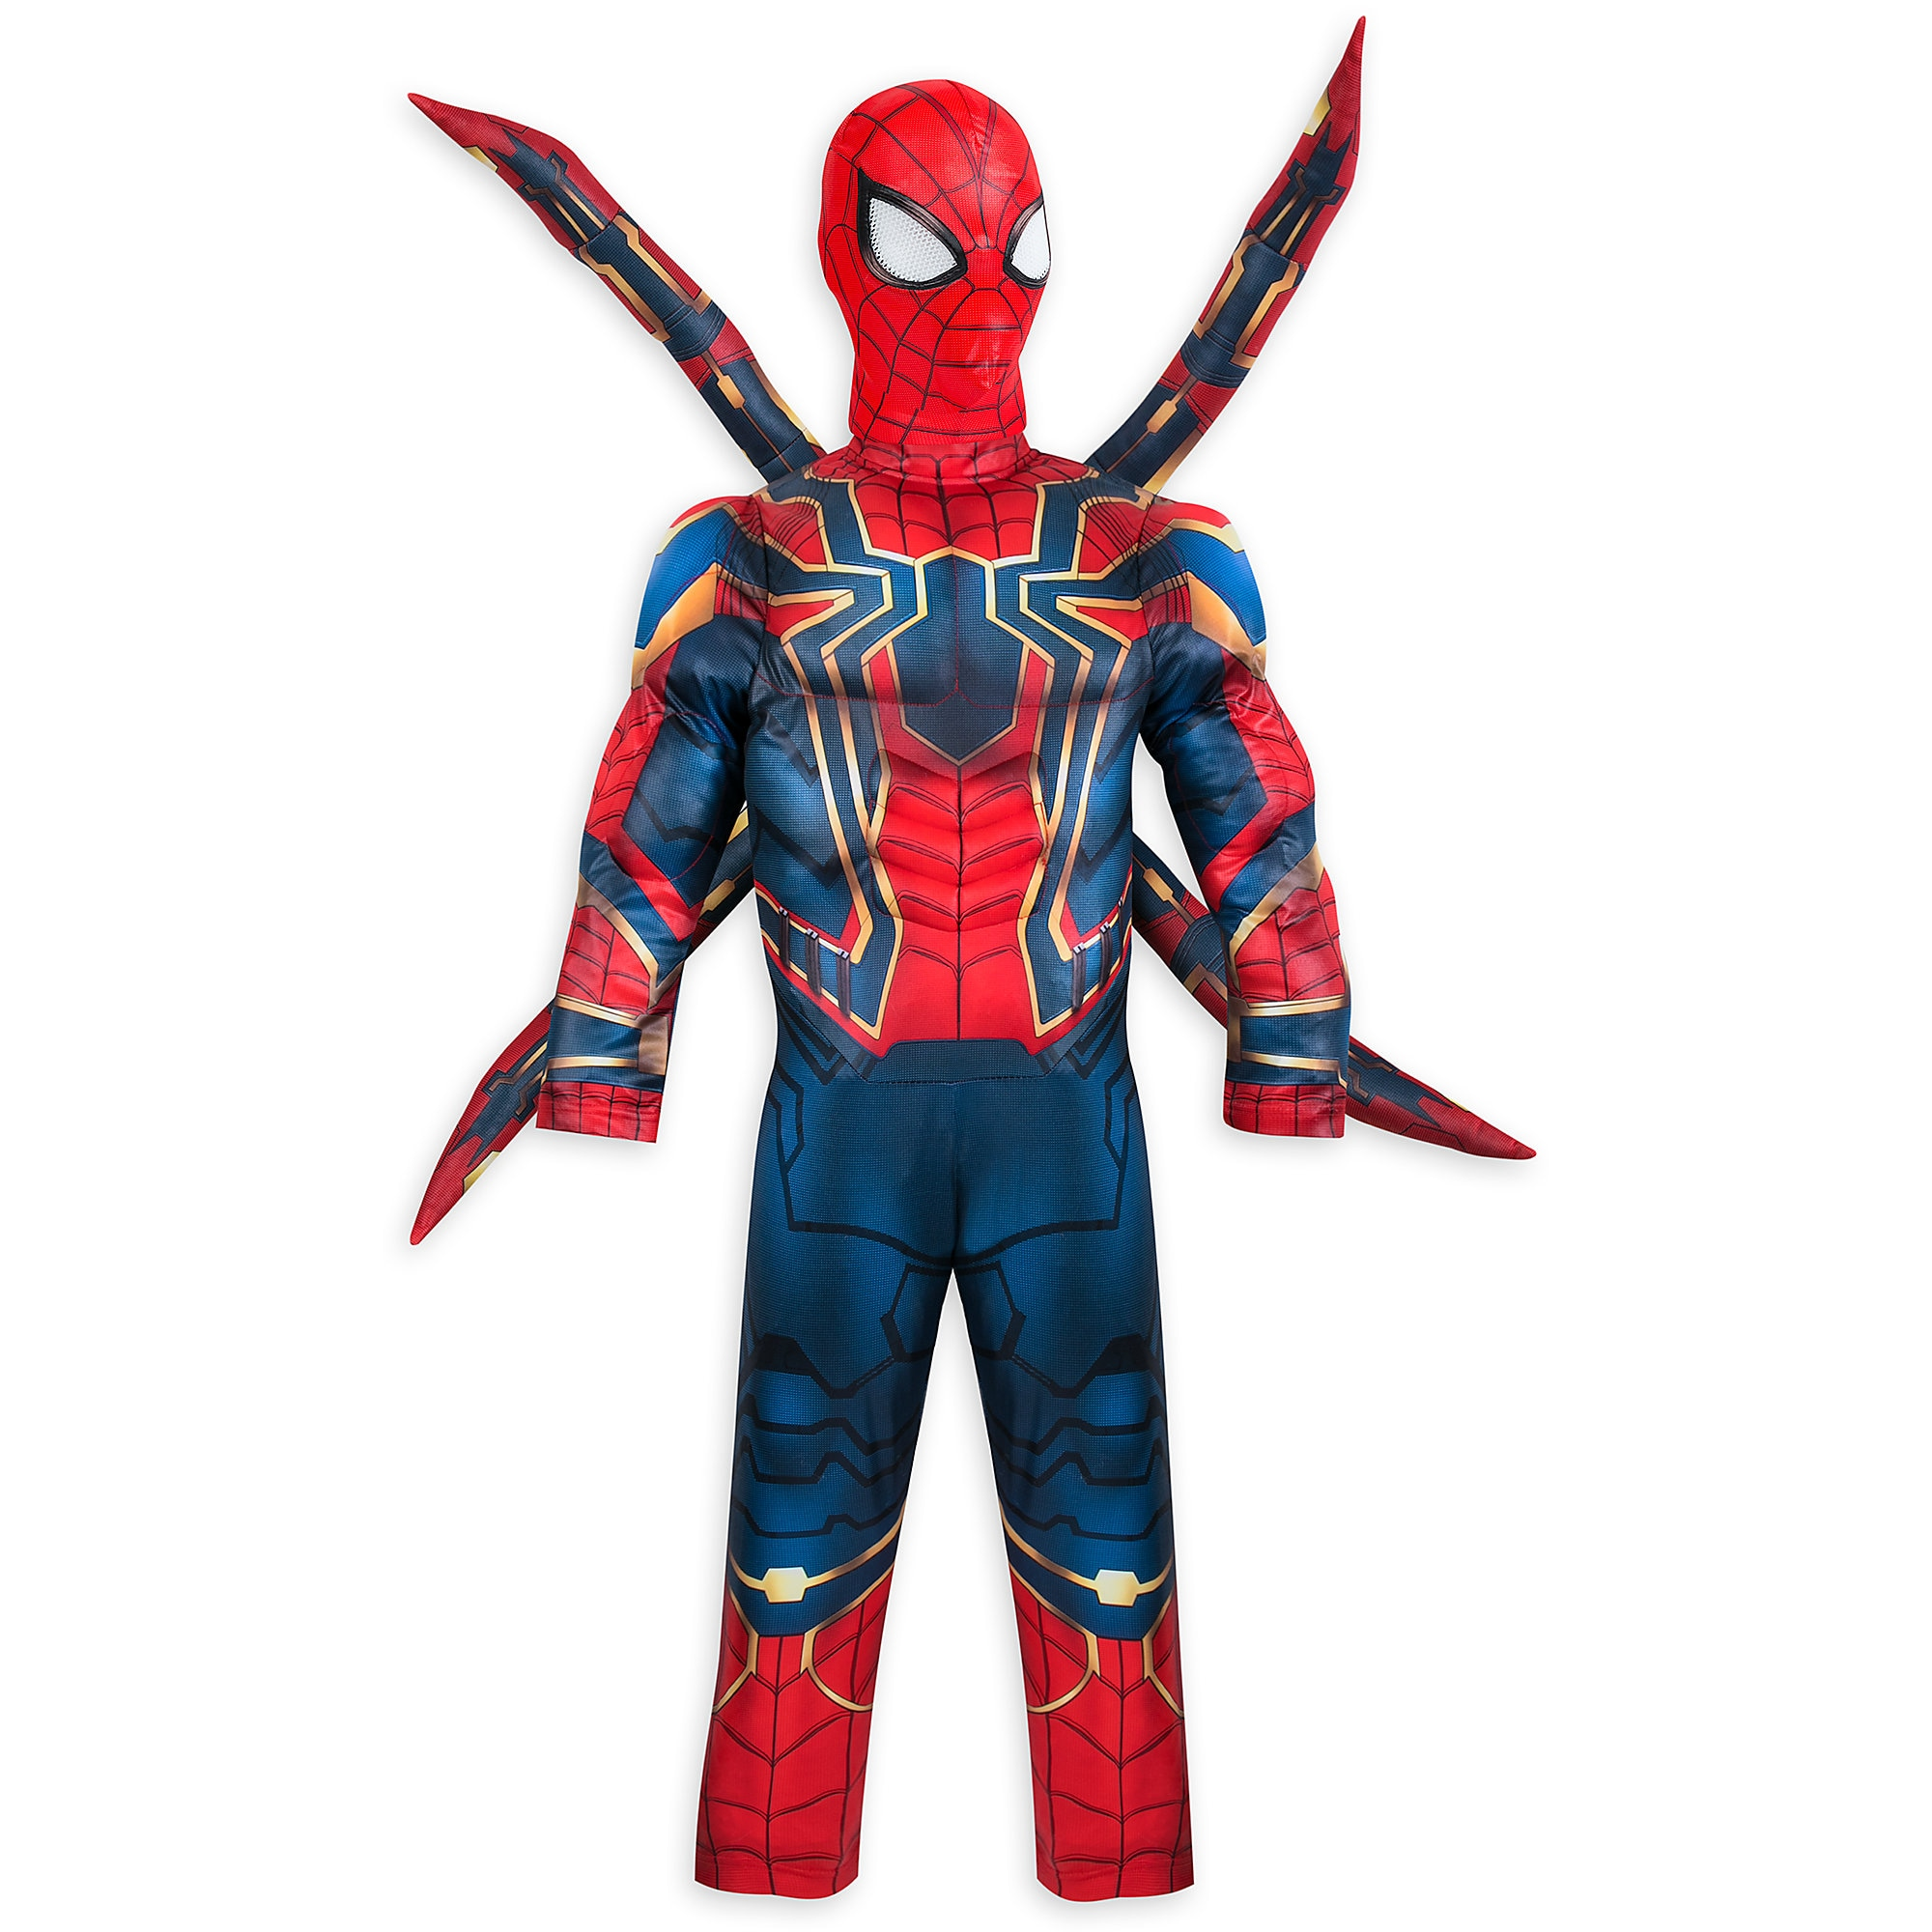 Iron Spider Costume for Kids - Marvelu0027s Avengers Infinity War  sc 1 st  shopDisney & Iron Spider Costume for Kids - Marvelu0027s Avengers: Infinity War ...